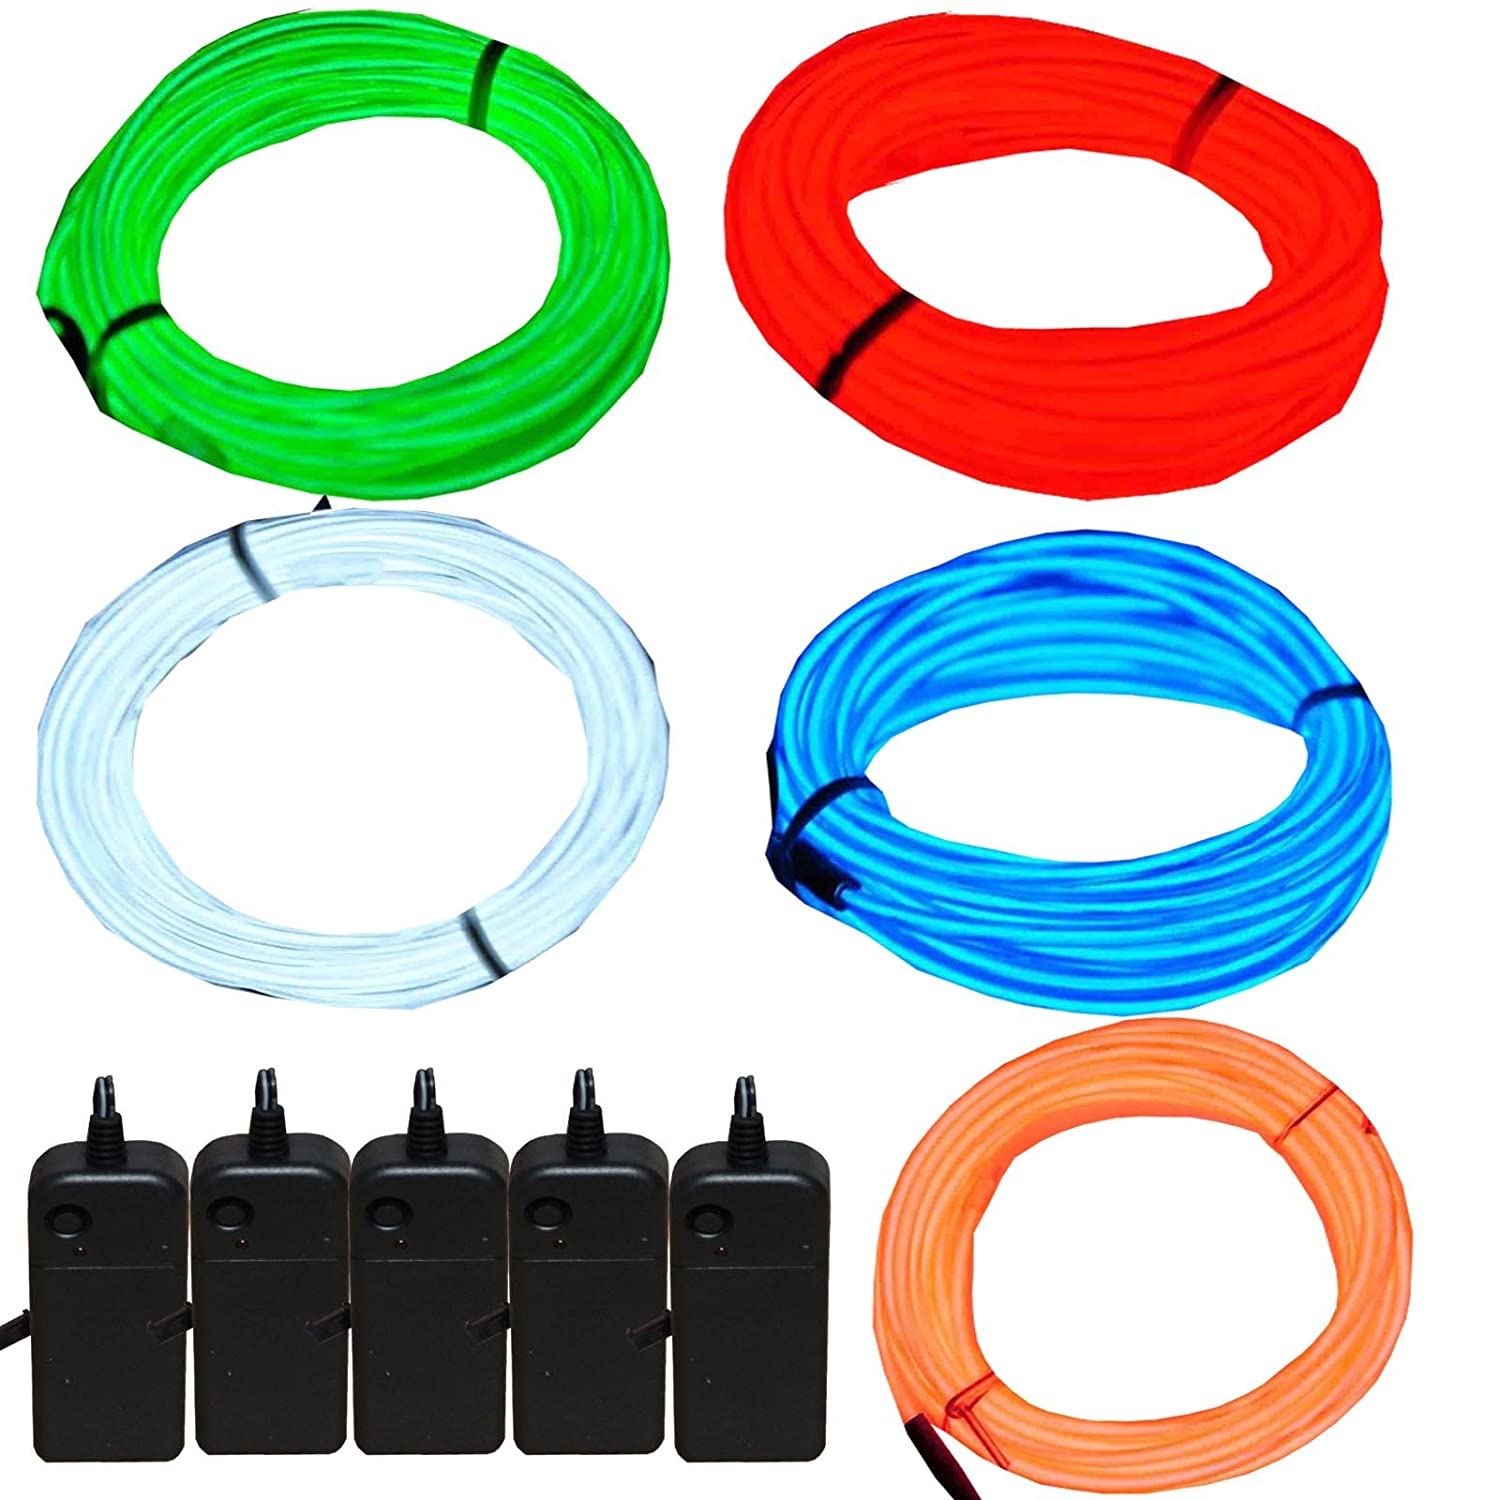 5 Pack - Jytrend 9ft Neon Light El Wire w/ Battery Pack